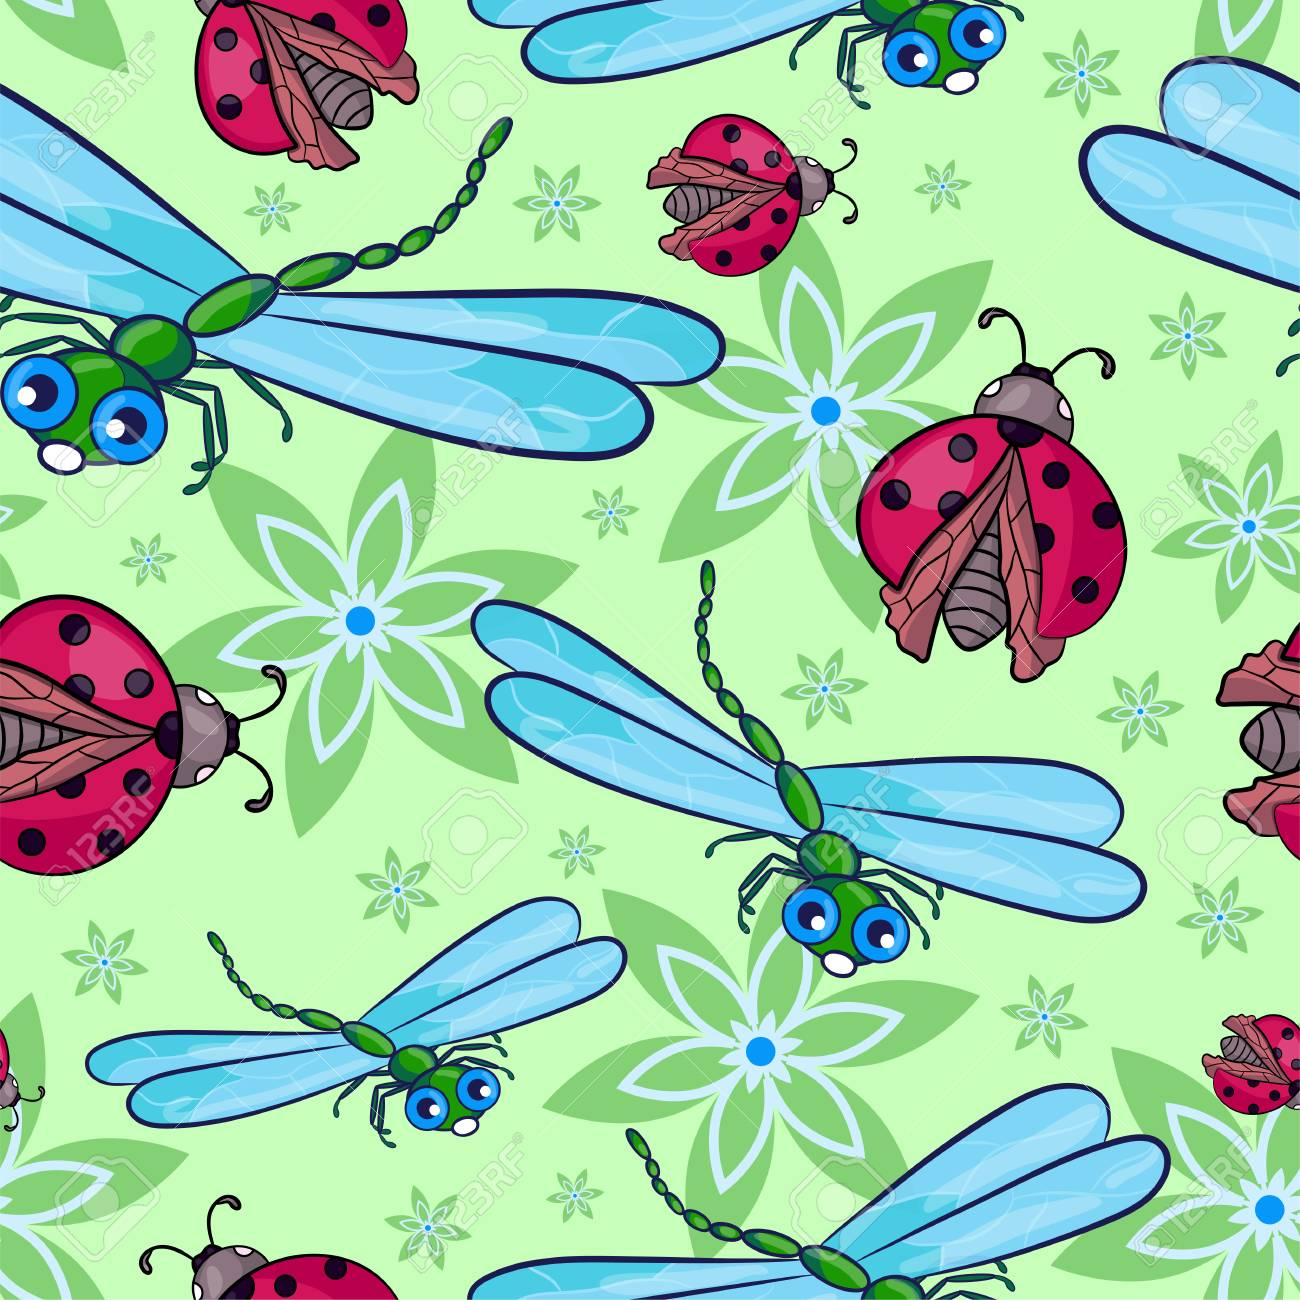 Dragonflies and Ladybugs